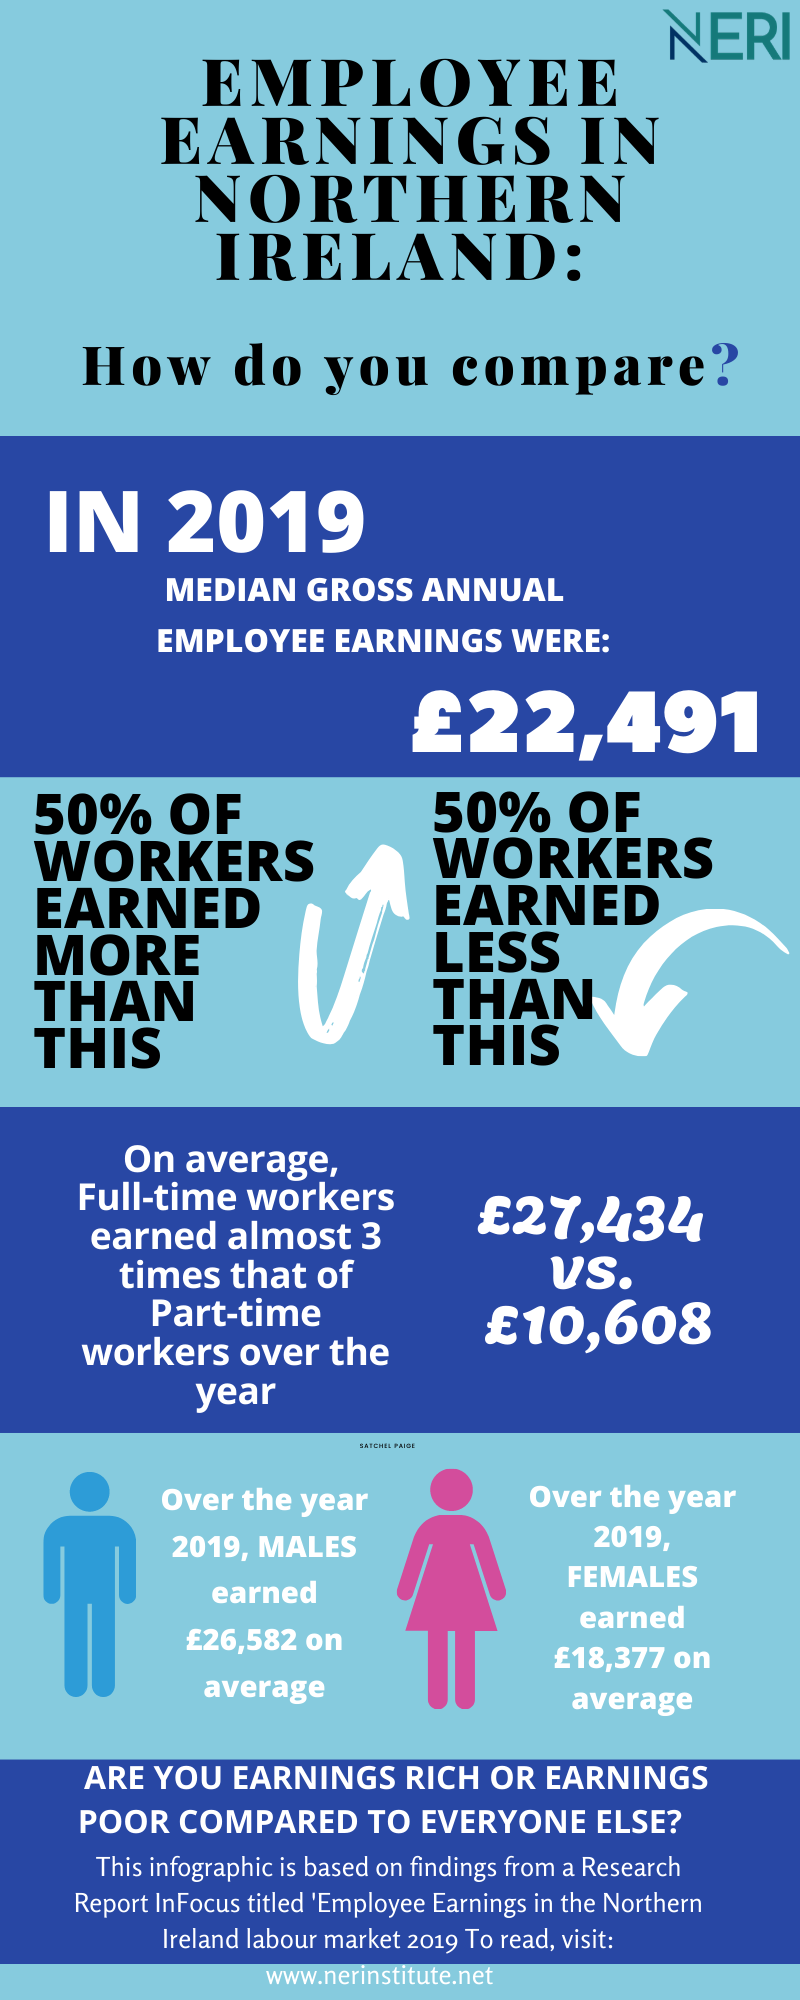 Employee earnings in Northern Ireland: How do you compare?